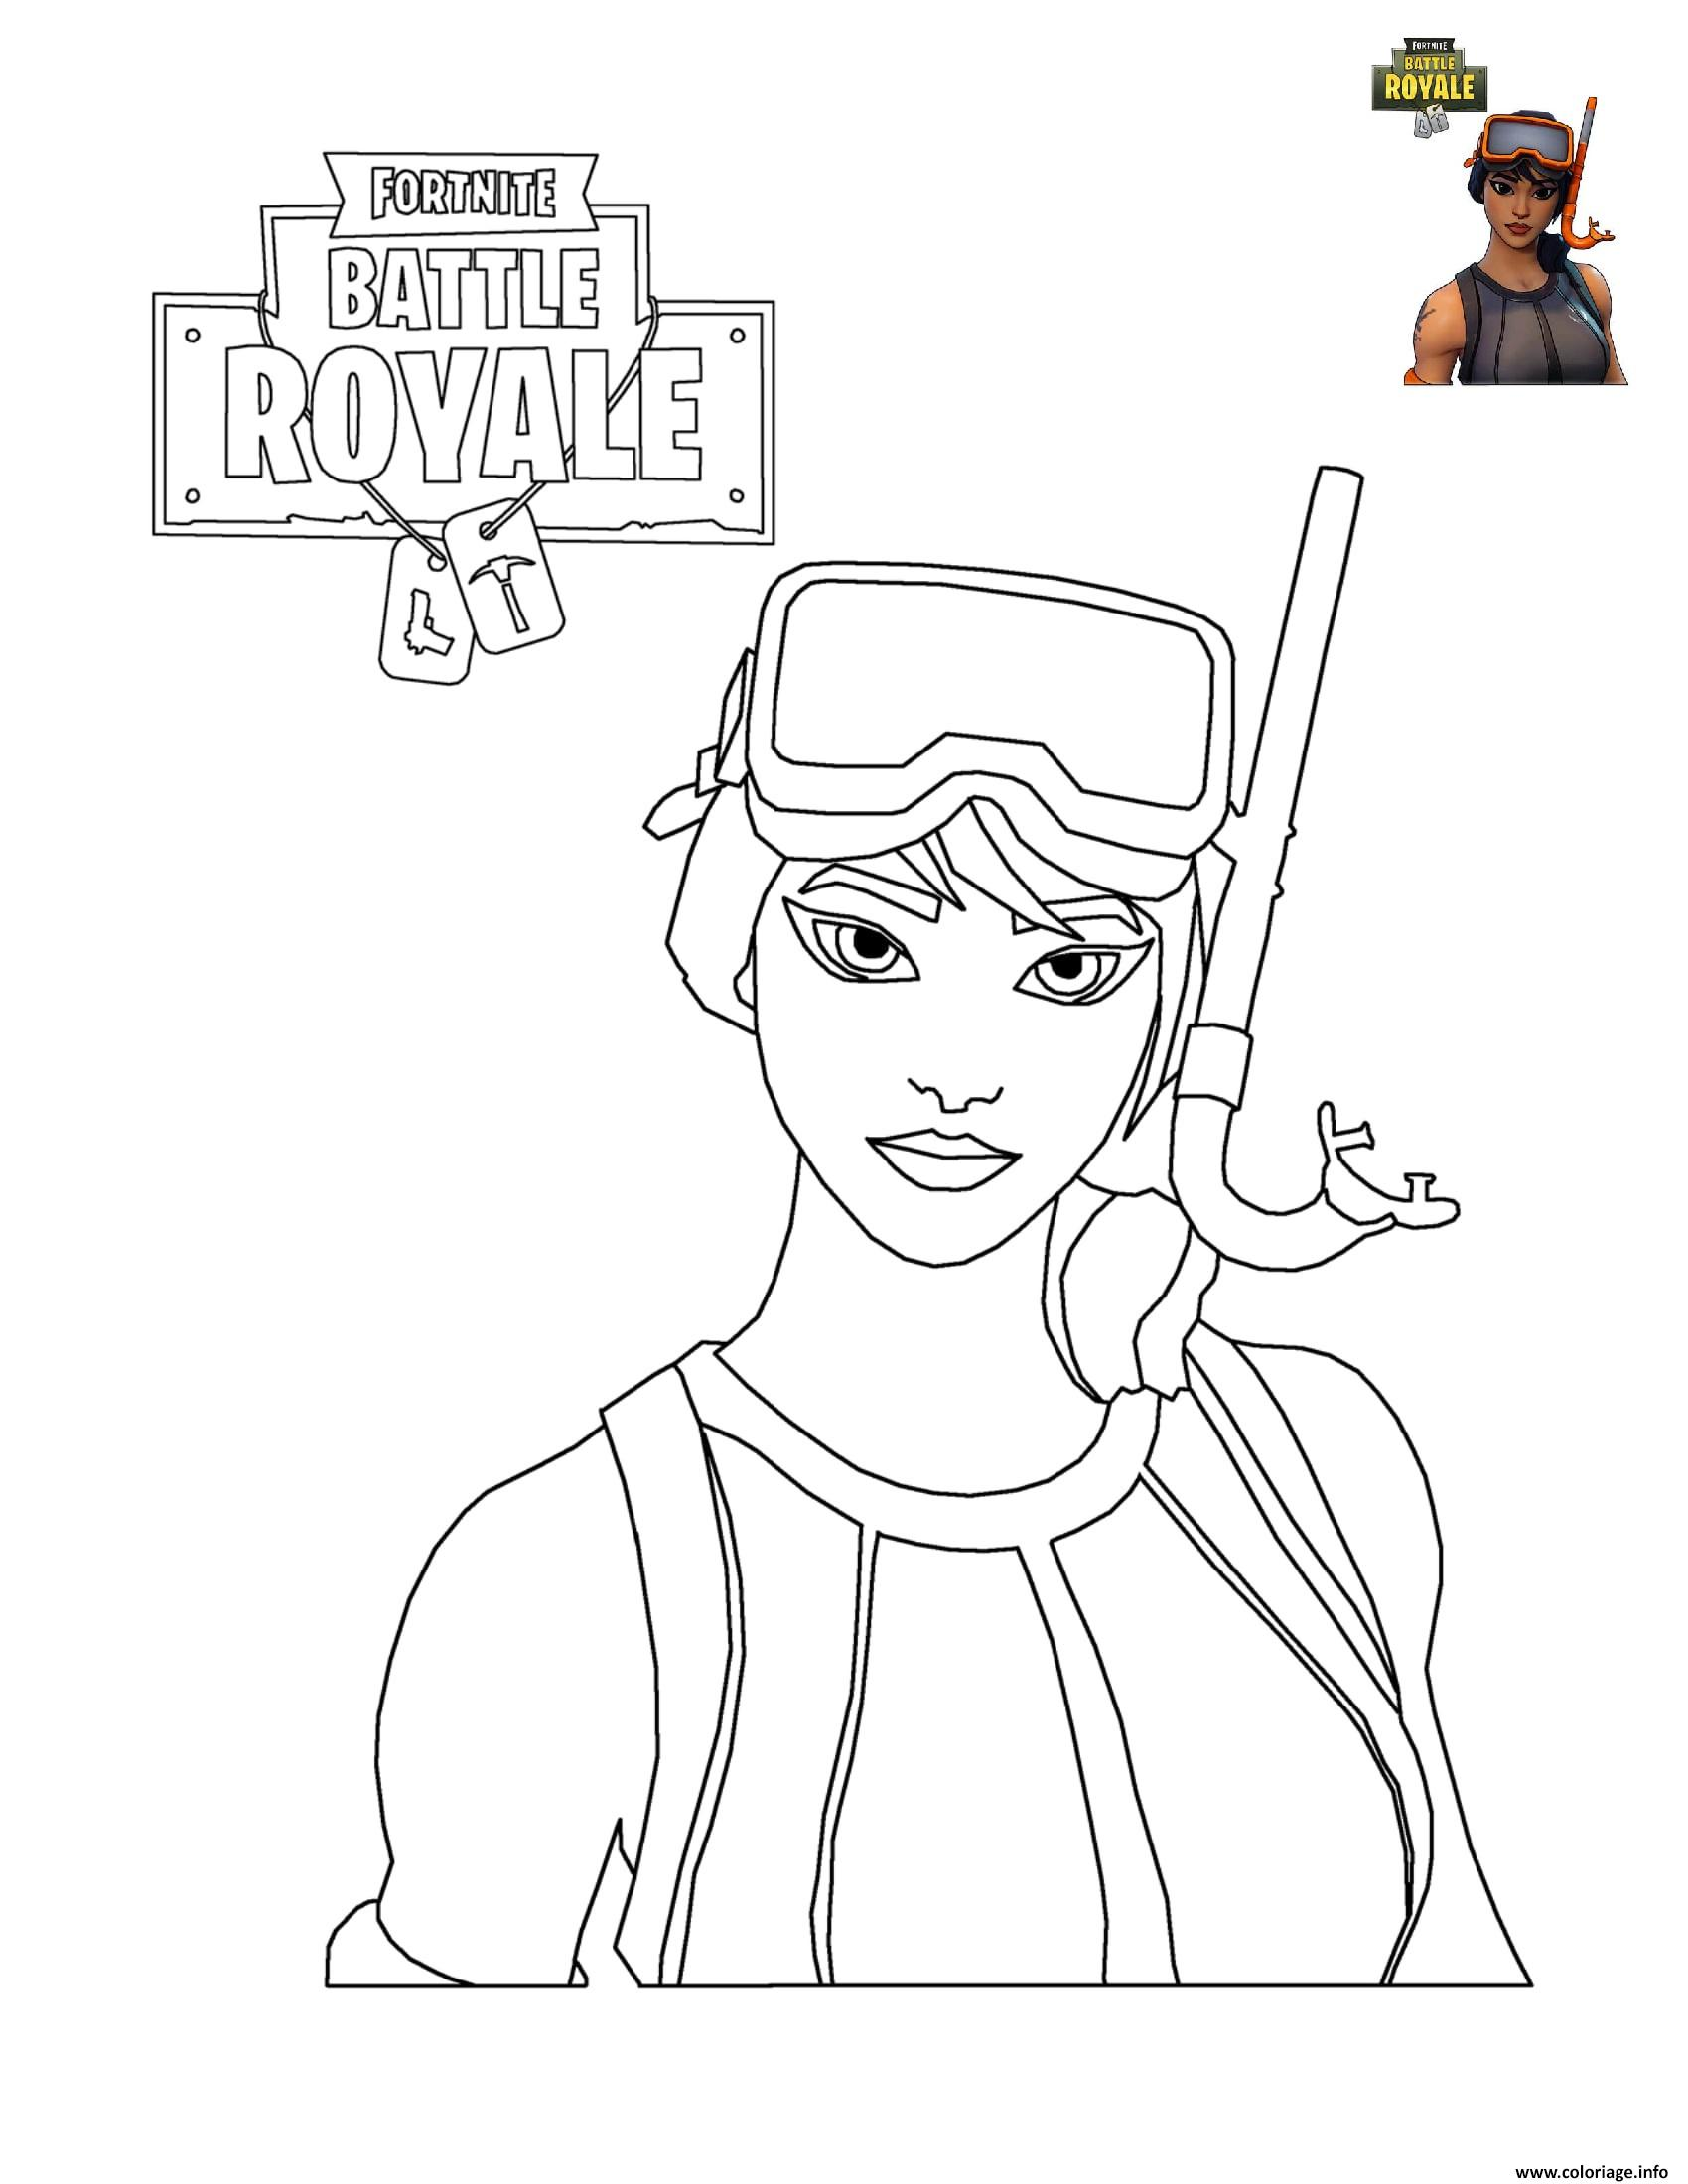 Coloriage Fortnite Battle Royale Personnage 7 Dessin